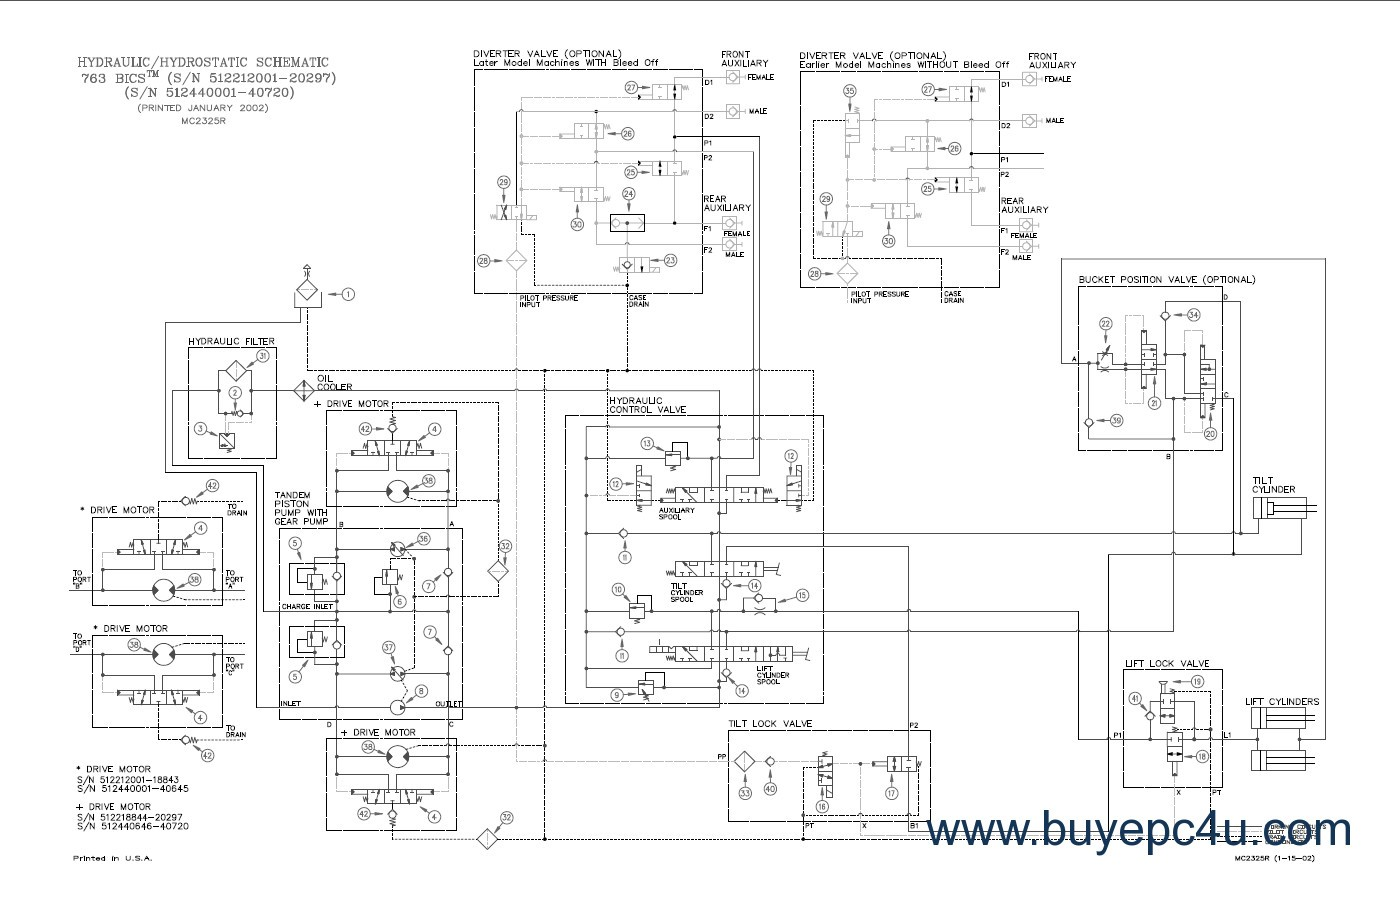 Surprising Bobcat 853 Wiring Diagram Pdf Wiring Diagram Database Wiring Cloud Faunaidewilluminateatxorg